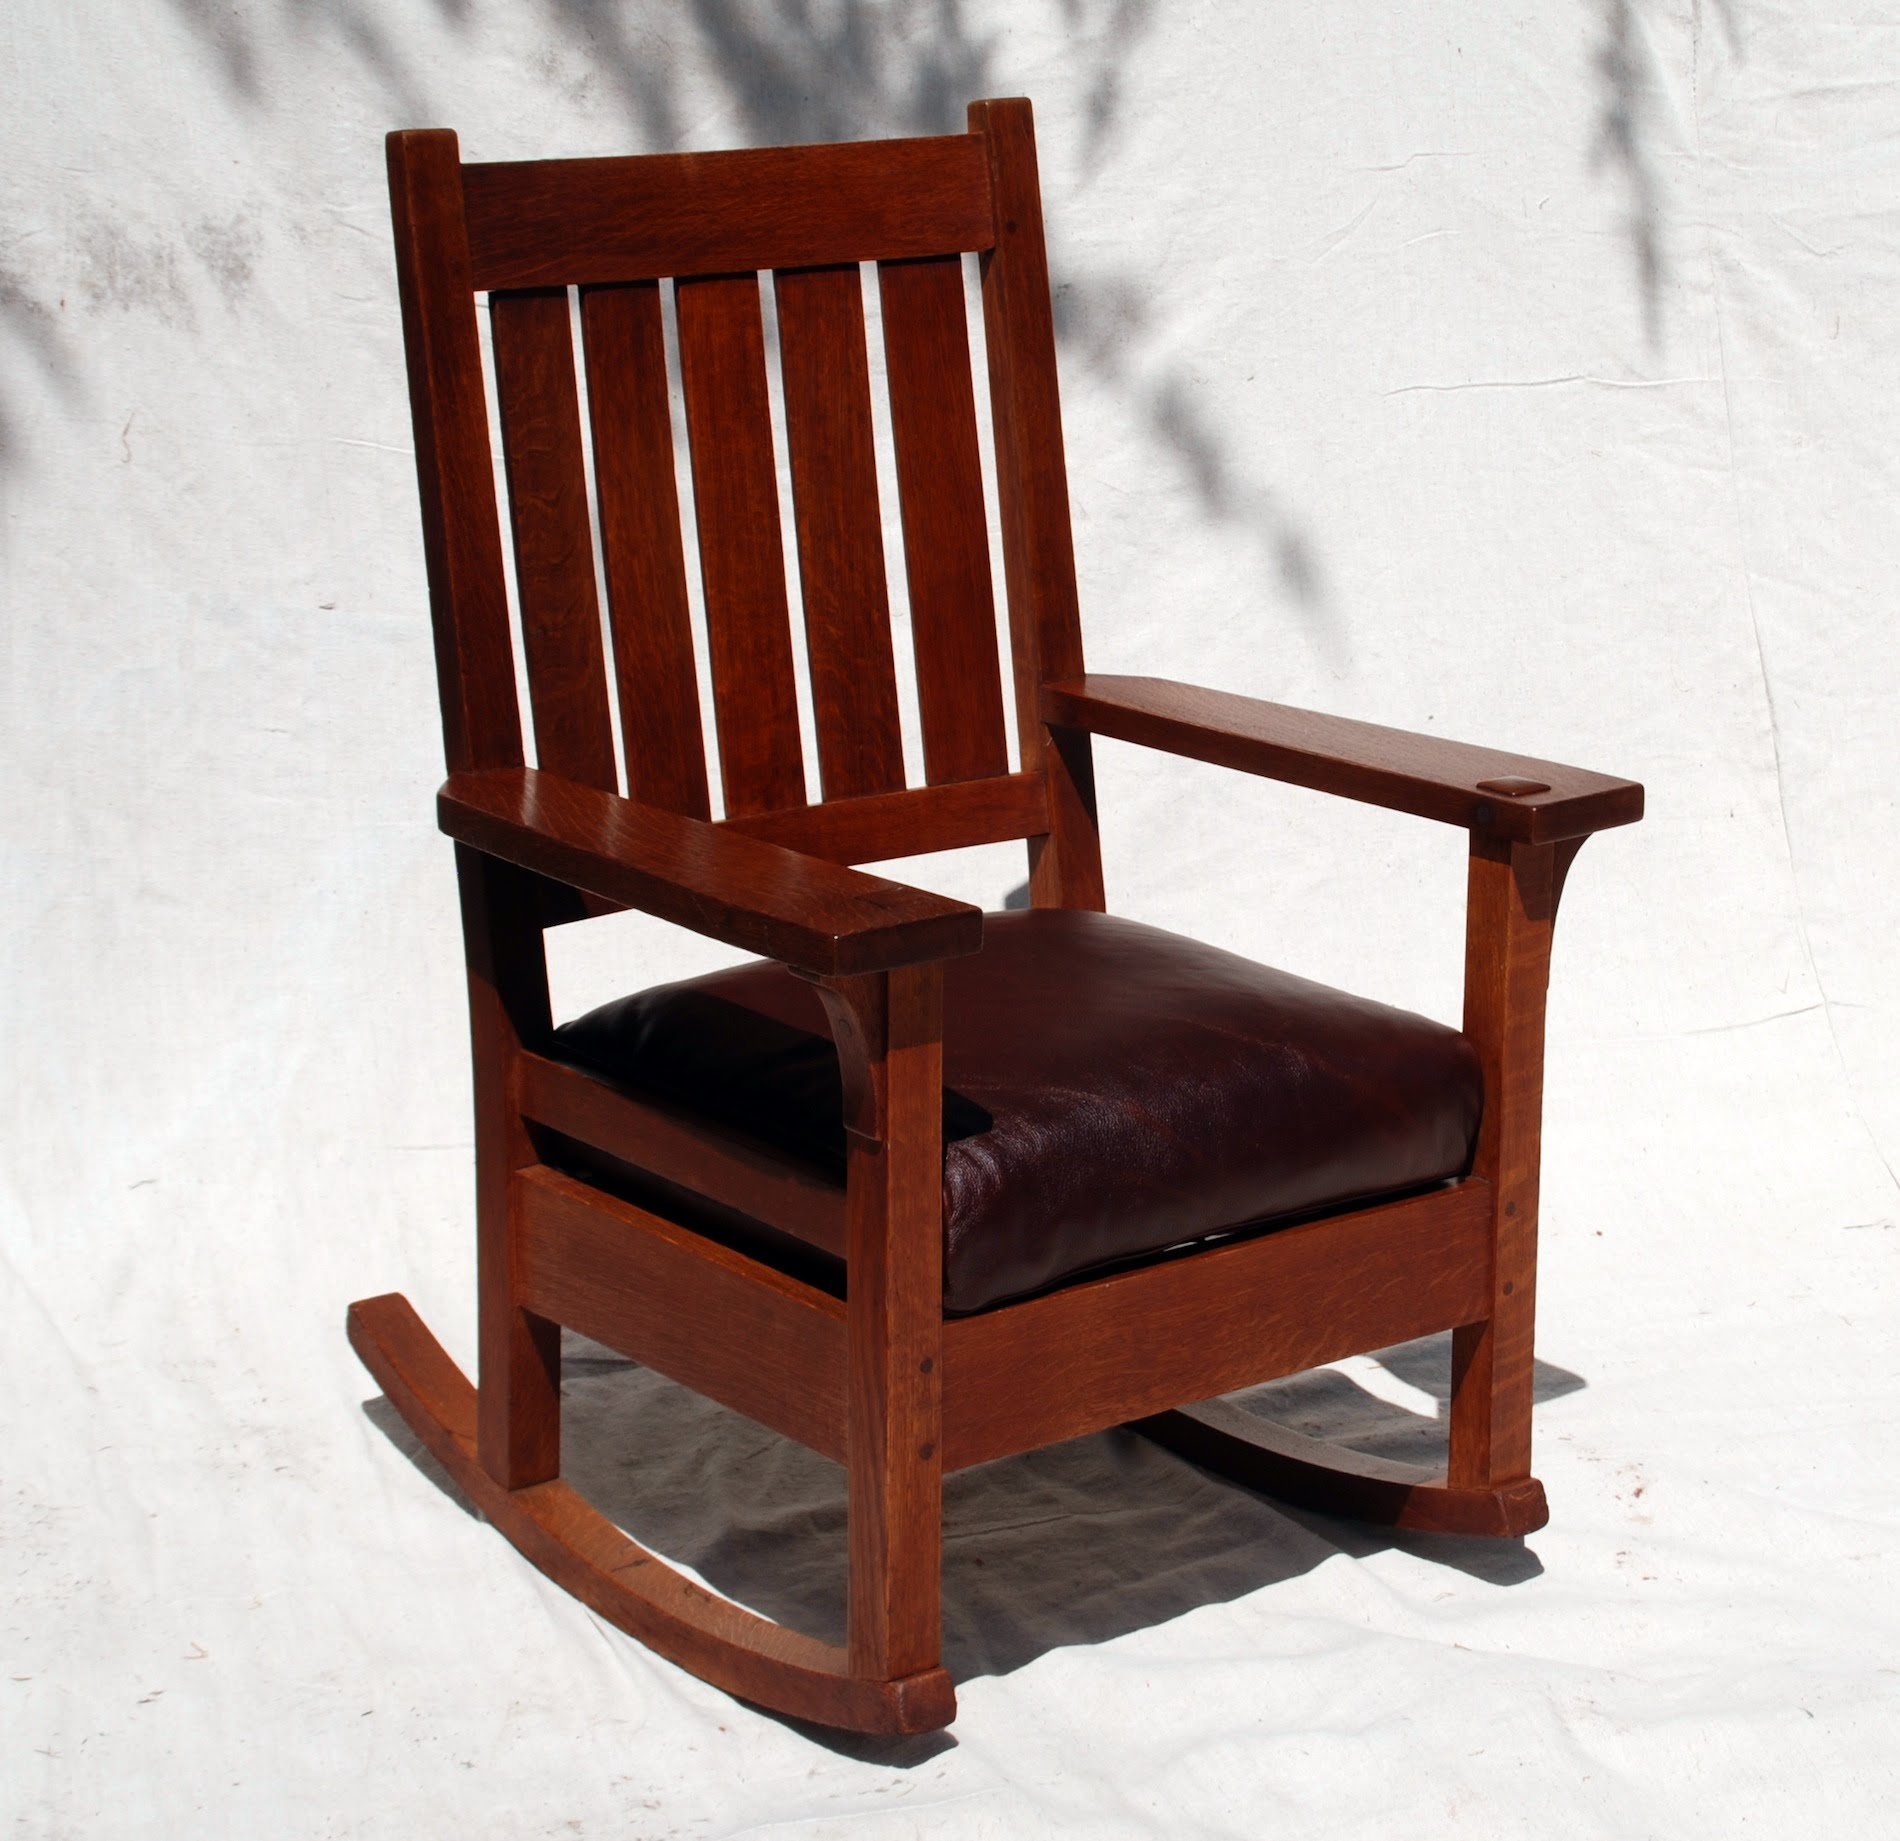 Stickley Chair Voorhees Craftsman Mission Oak Furniture Early Gustav